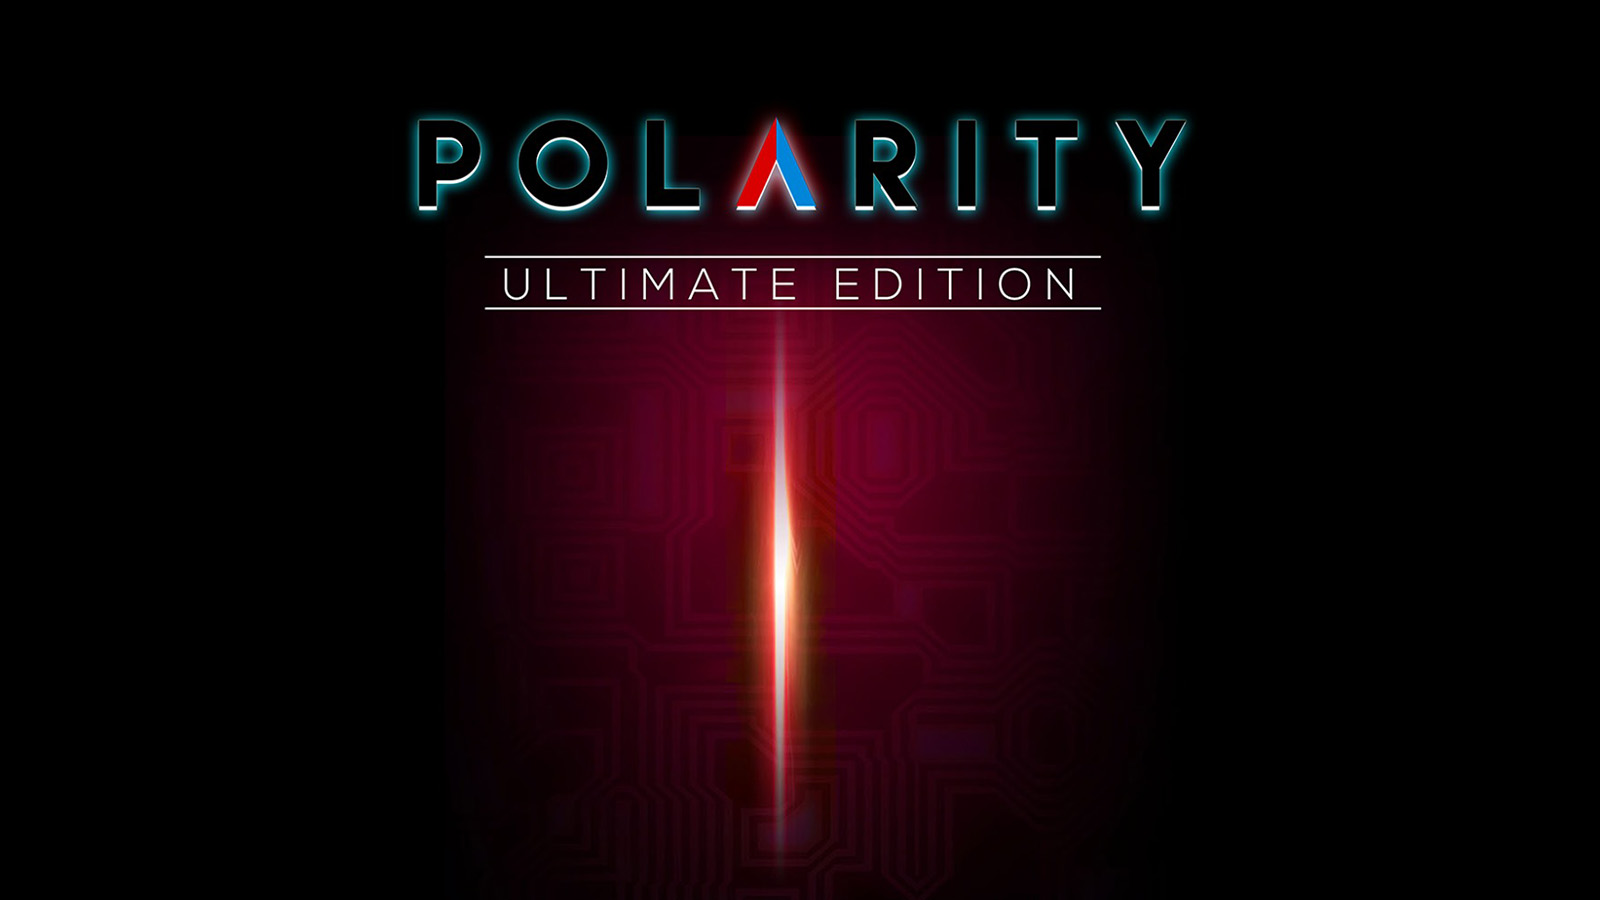 Polarity: Ultimate Edition